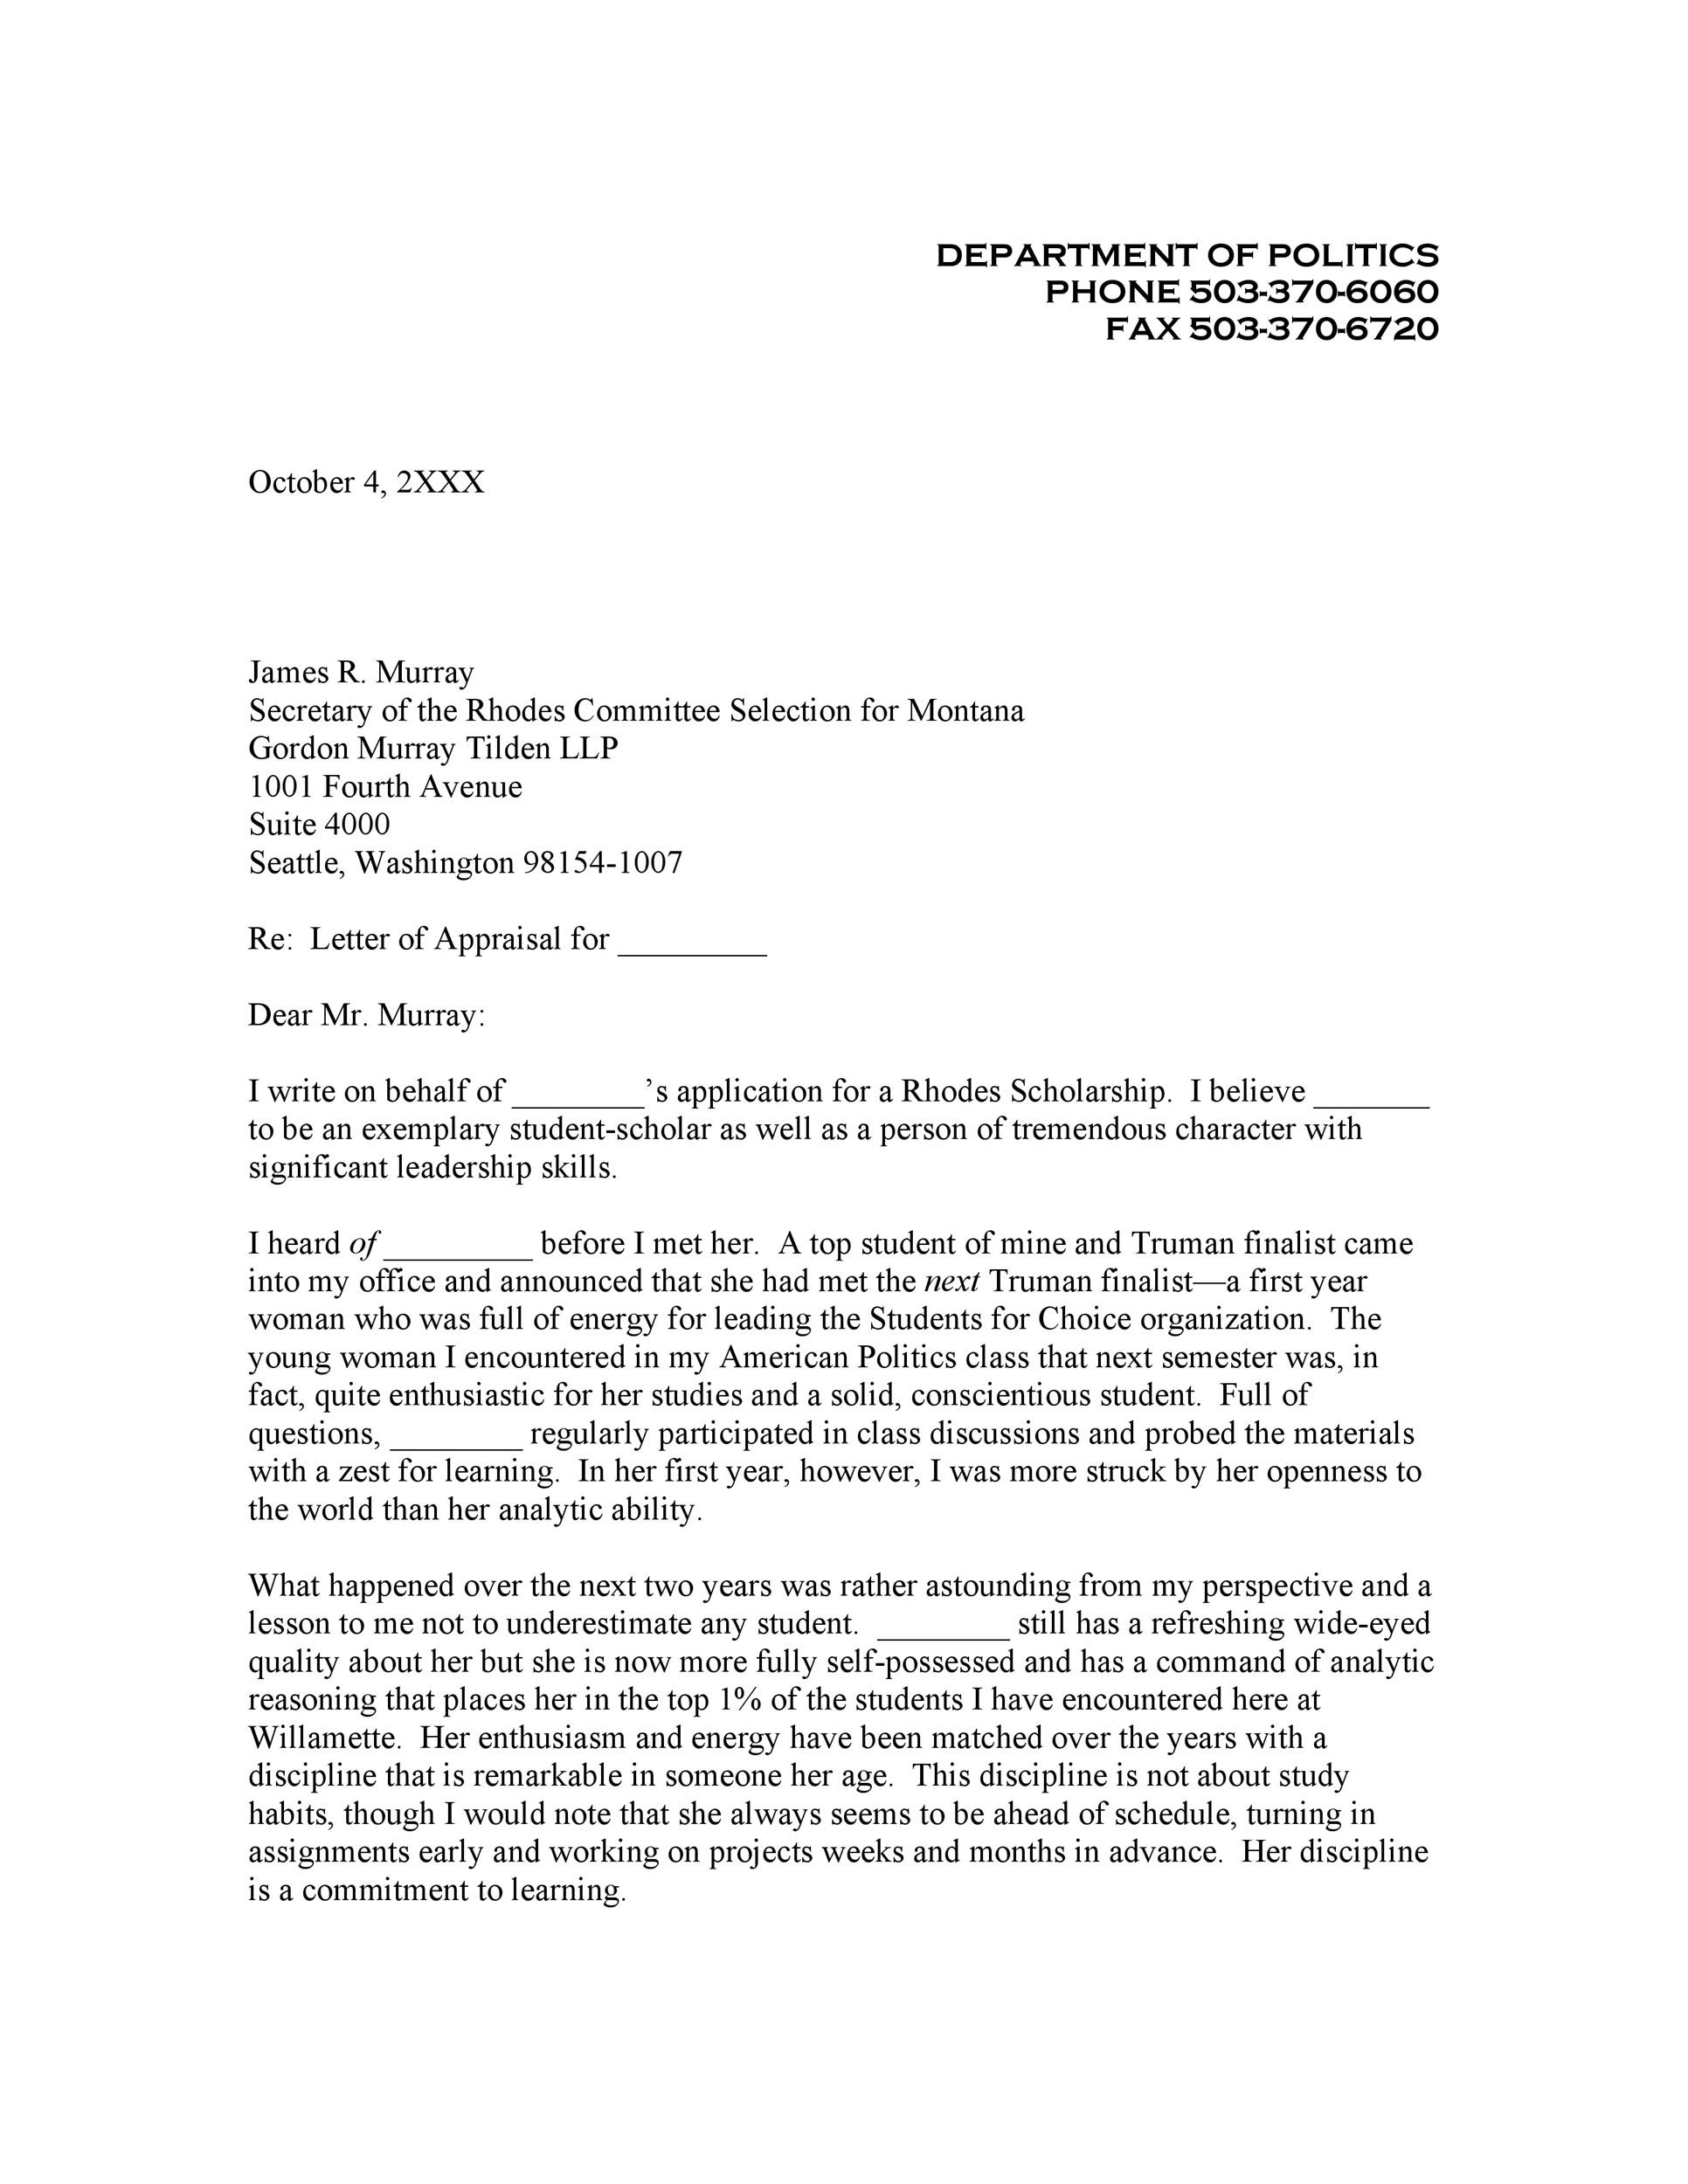 Recommendation Letter Template For Scholarship - template ...